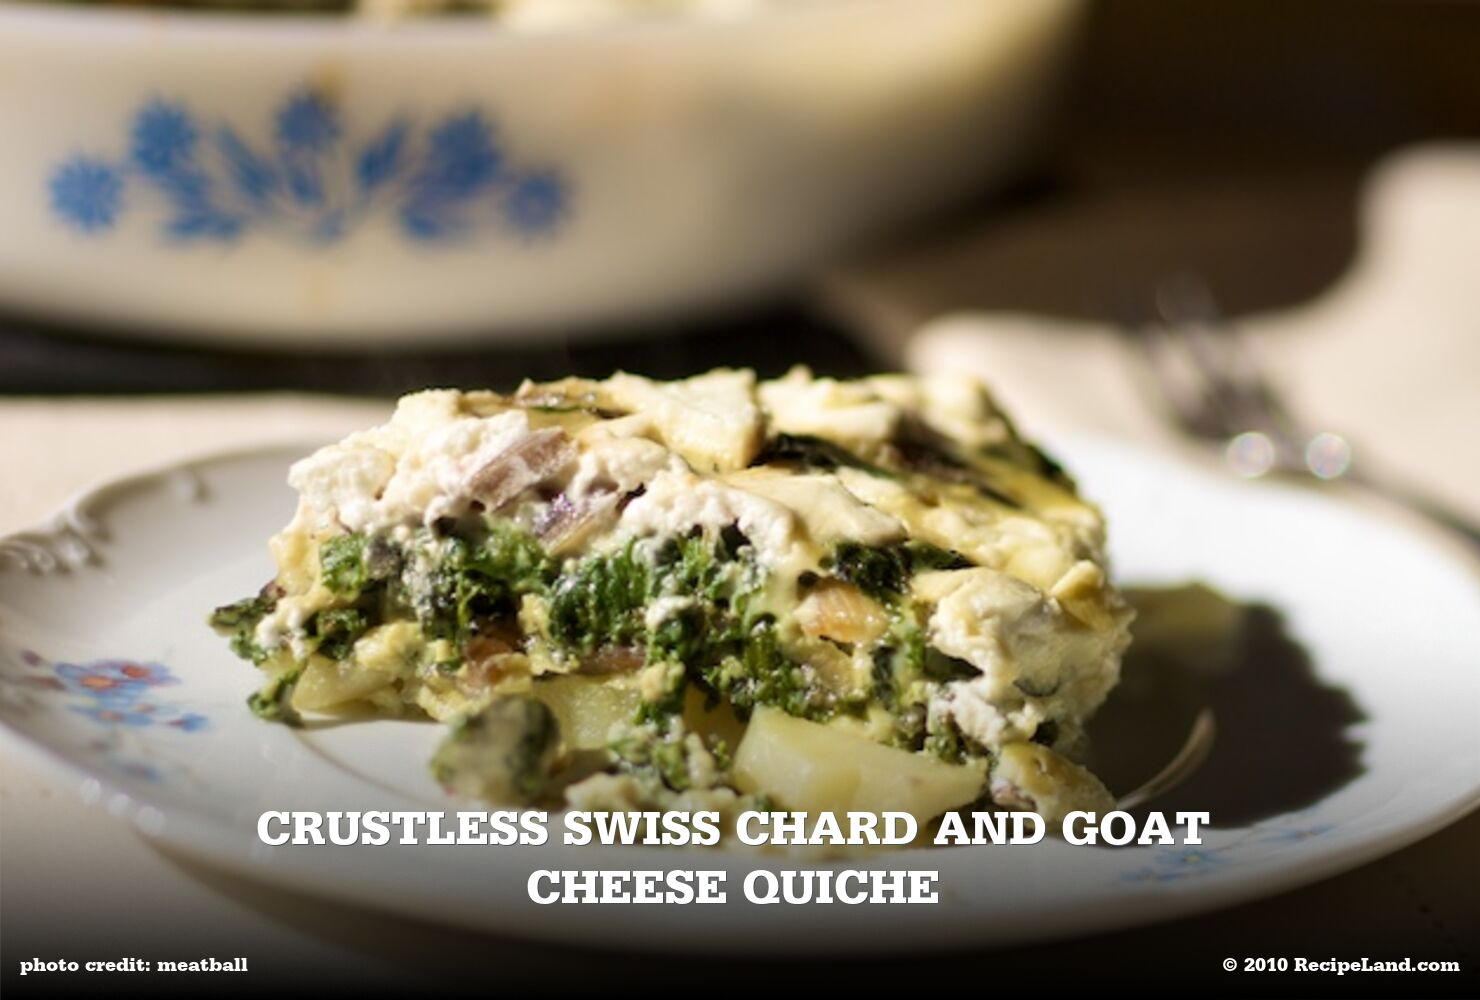 Crustless Swiss Chard and Goat Cheese Quiche